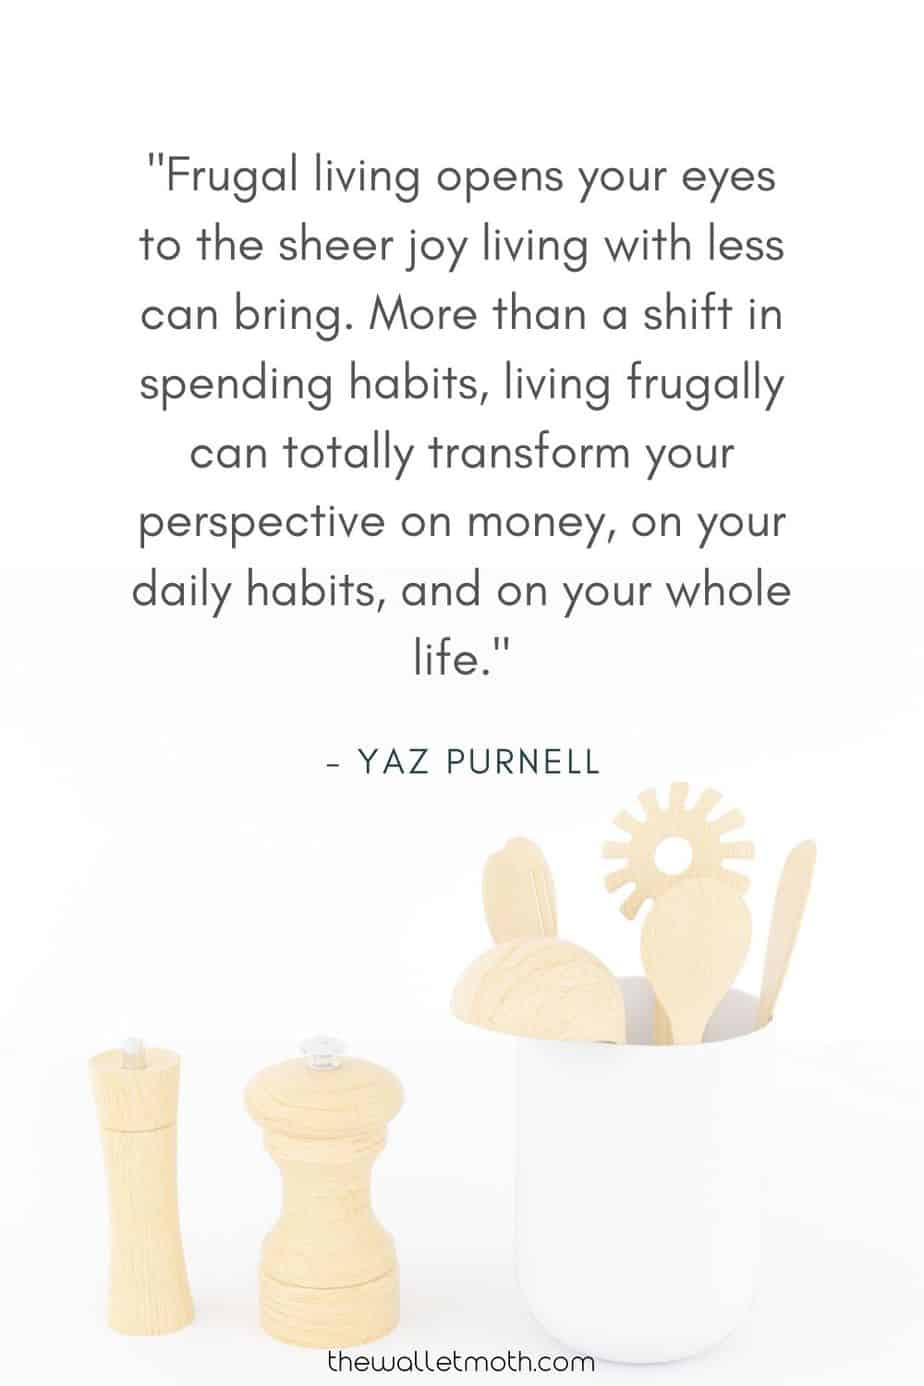 """Frugal living opens your eyes to the sheer joy living with less can bring. More than a shift in spending habits, living frugally can totally transform your perspective on money, on your daily habits, and on your whole life."" - The Wallet Moth Simple Living Quotes"